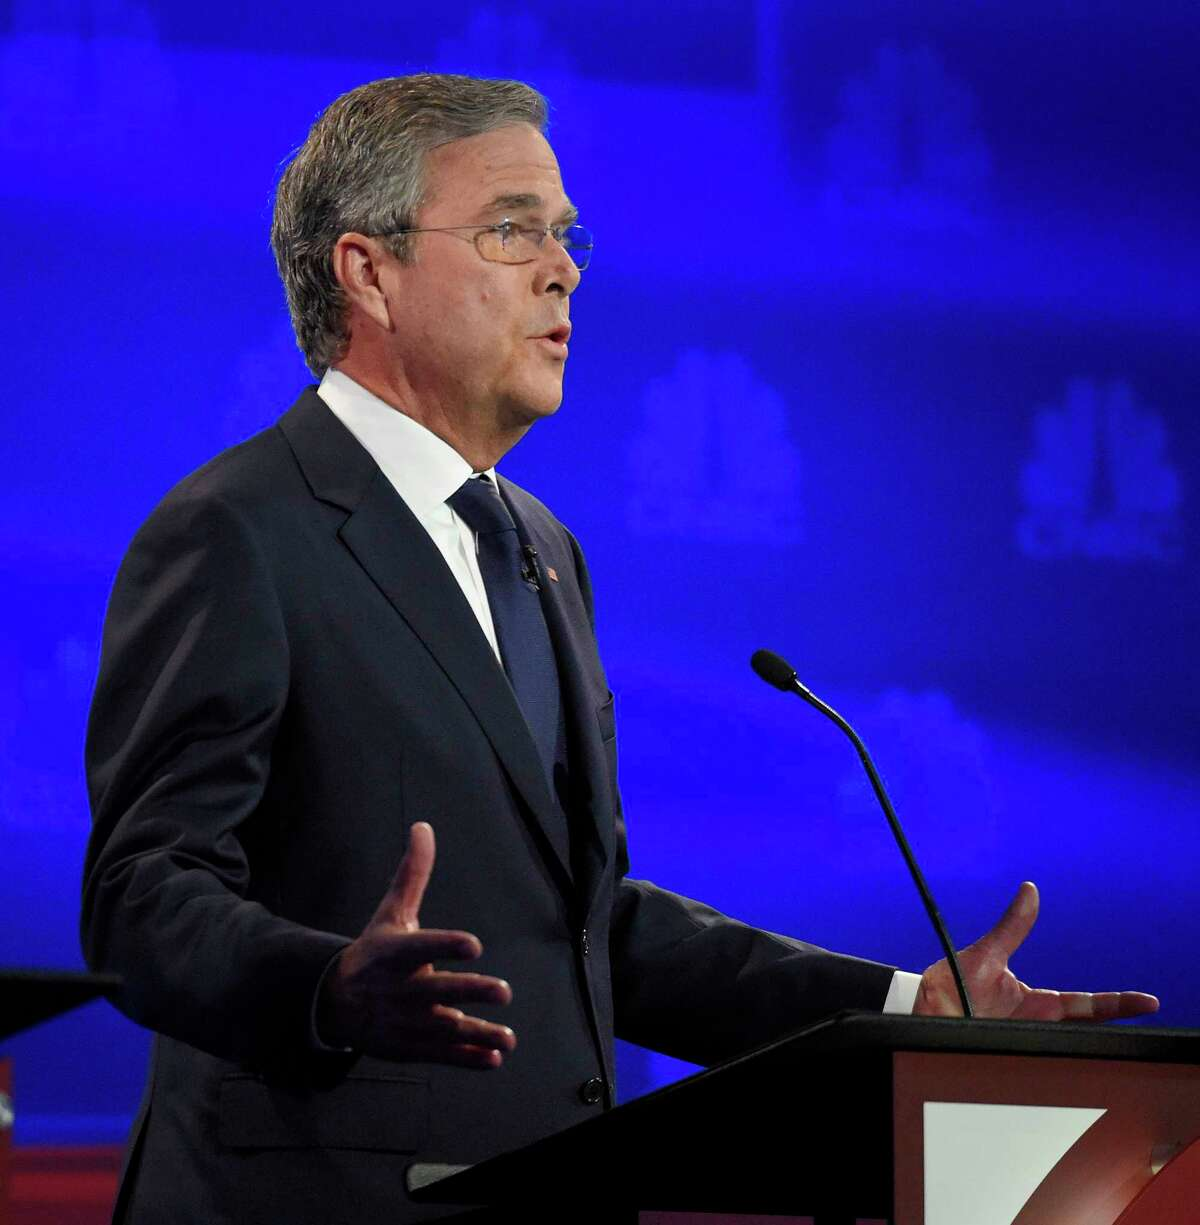 Jeb Bush makes a point during the CNBC Republican presidential debate at the University of Colorado, Wednesday, Oct. 28, 2015, in Boulder, Colo.